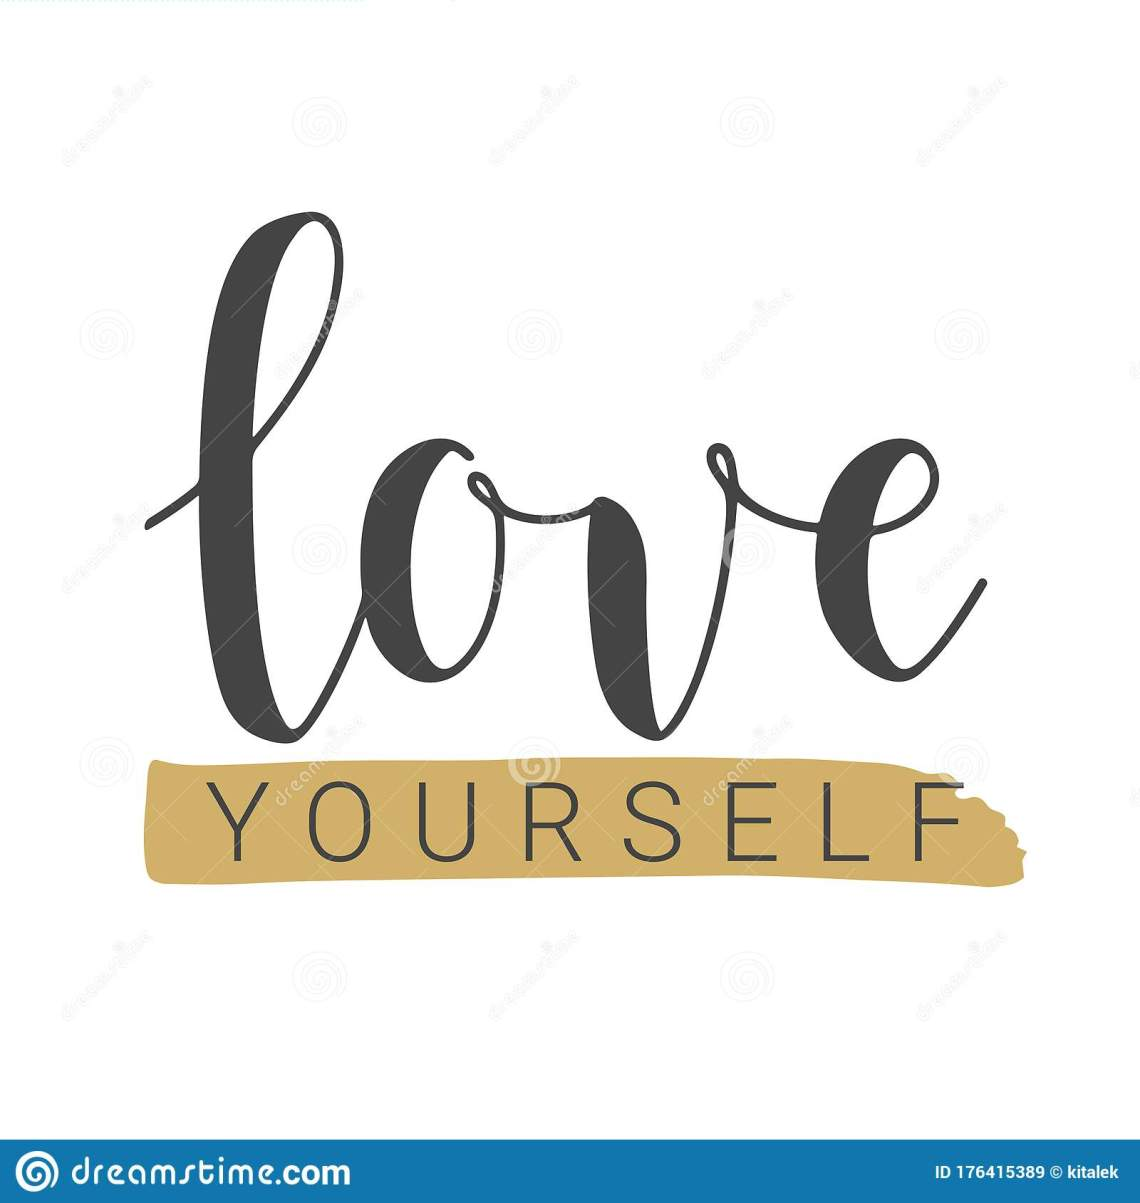 Download Handwritten Lettering Of Love Yourself On White Background ...